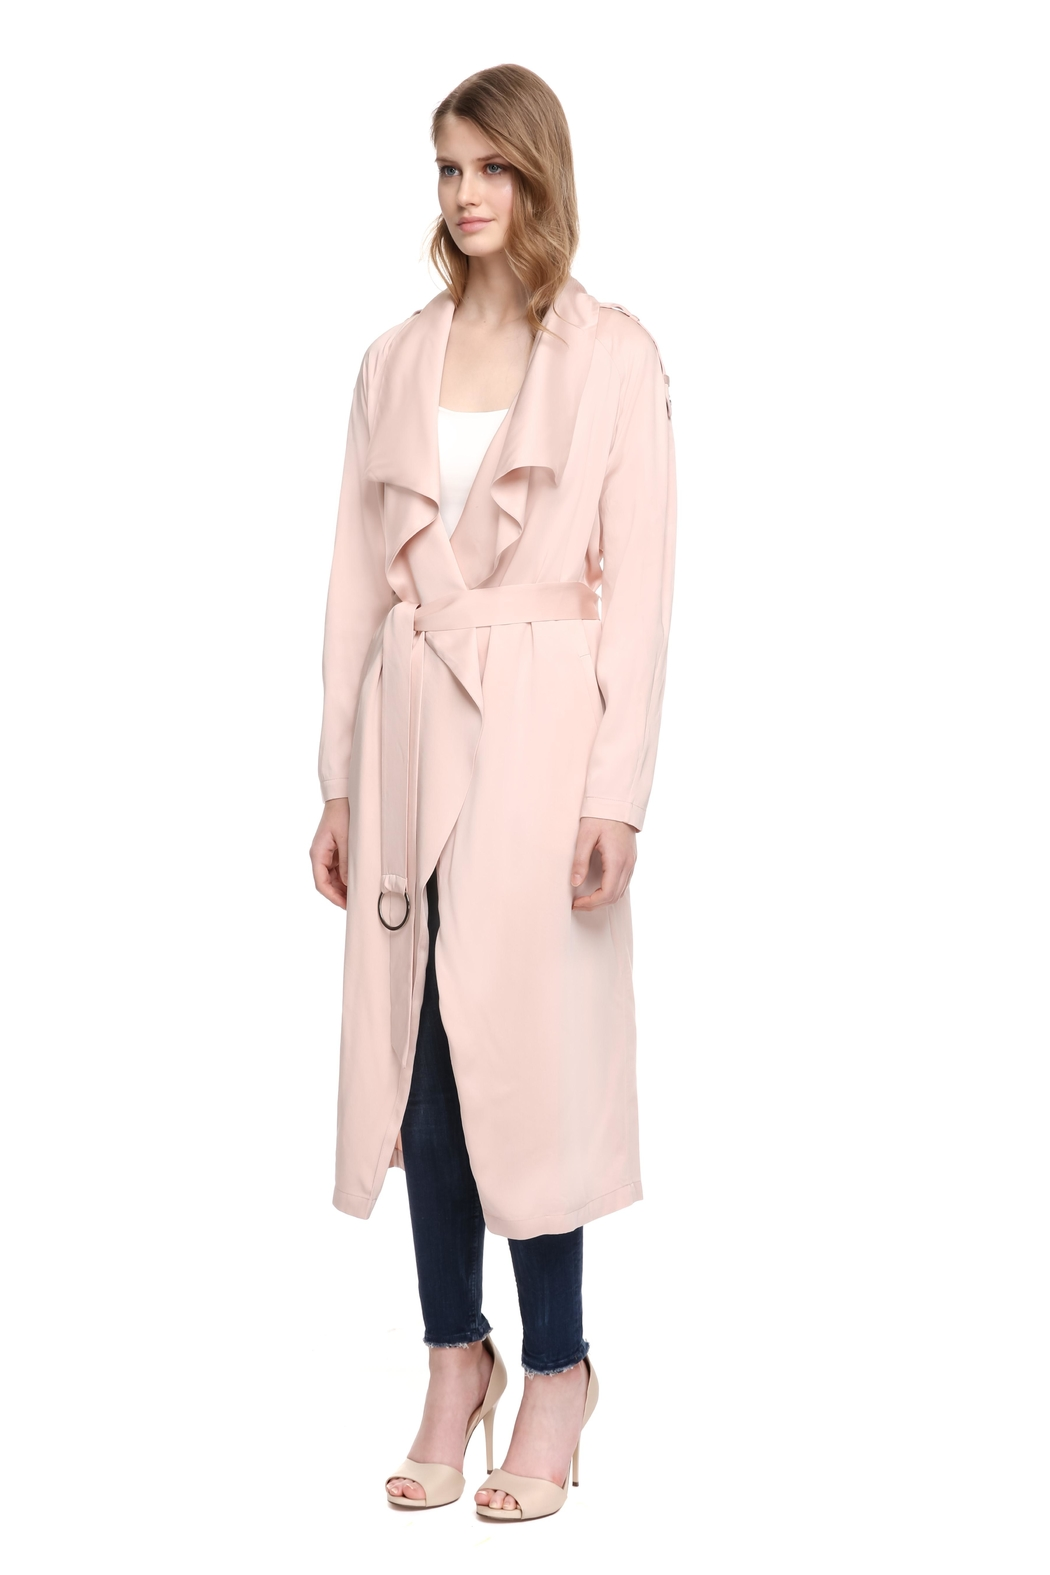 Soia & Kyo Marinella Straight-Fit Coat - Side Cropped Image